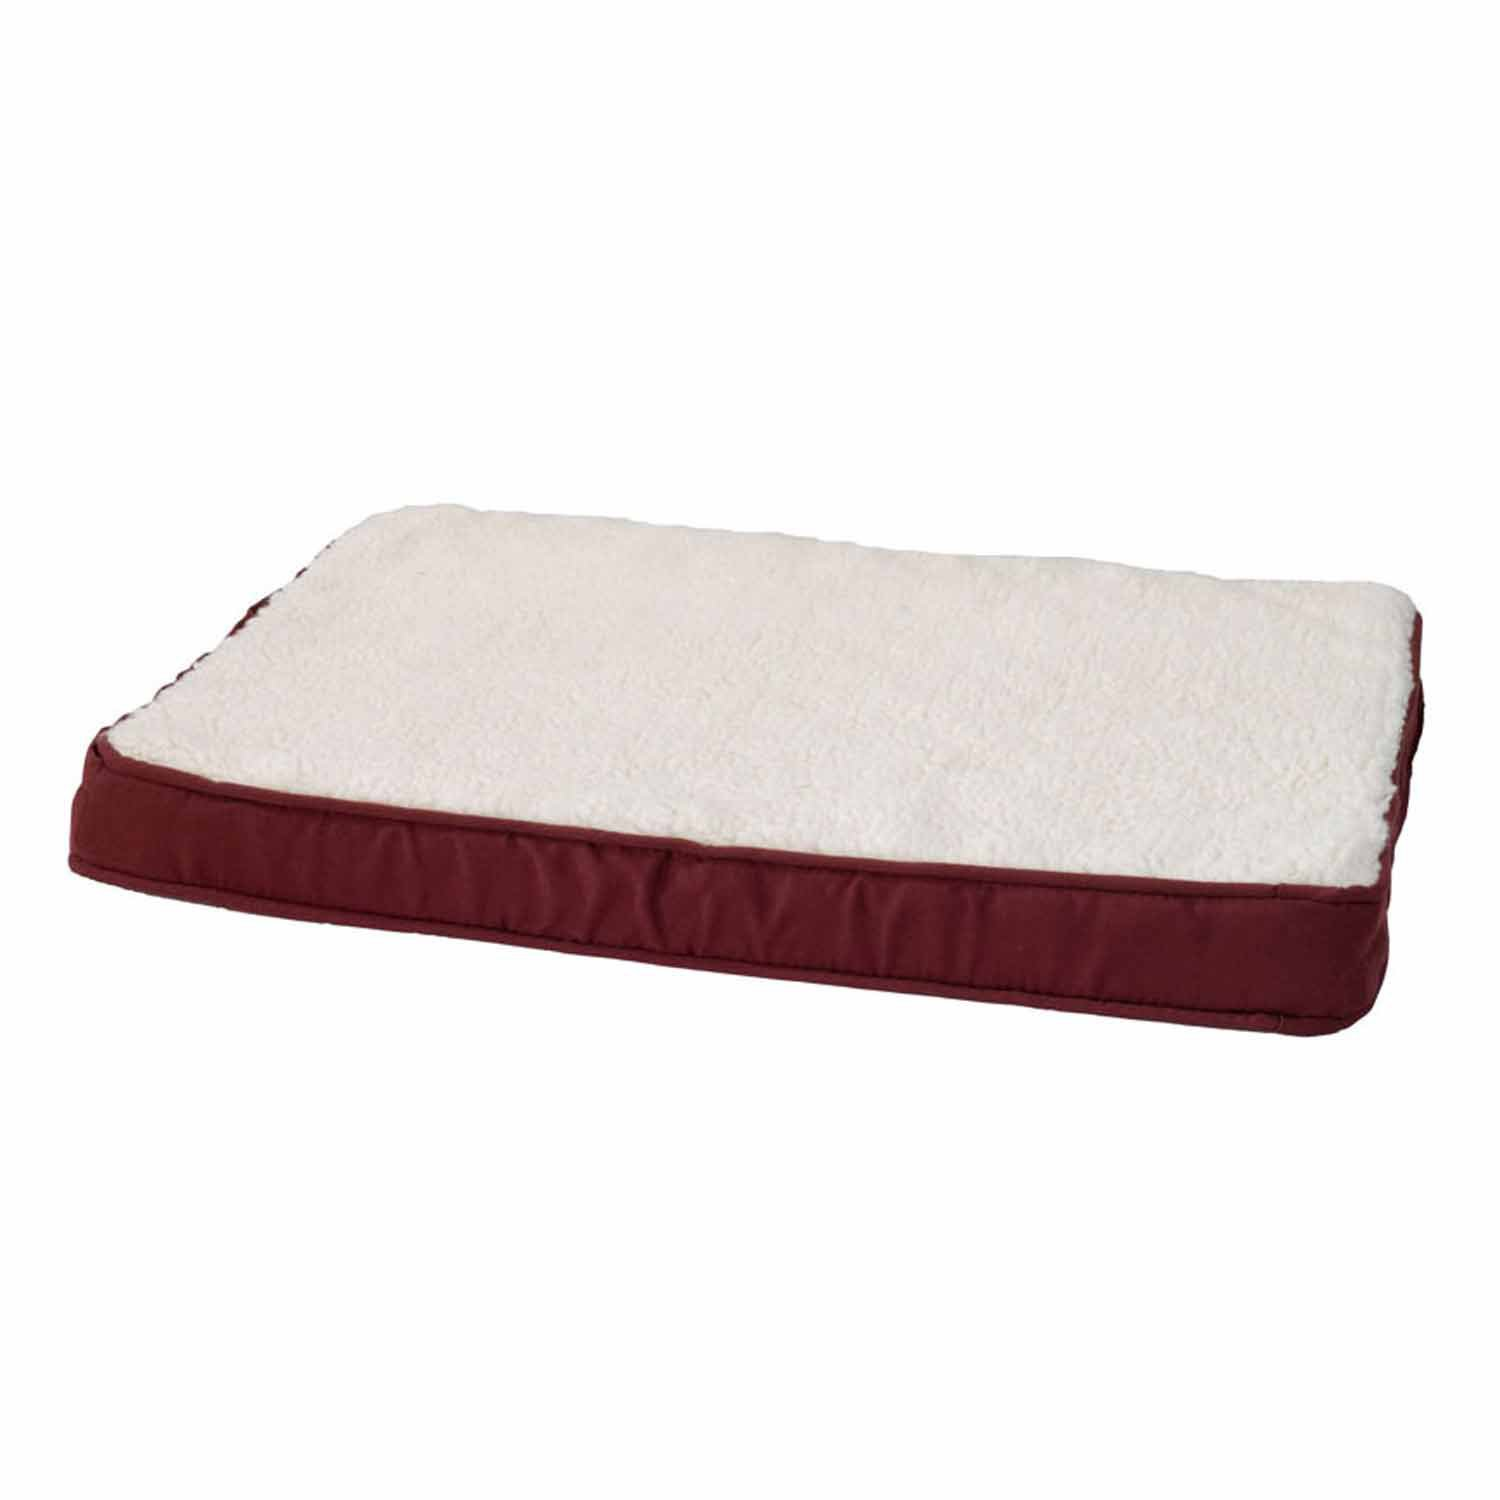 Alphapooch Lounger Orthopedic Garnet Dog Bed